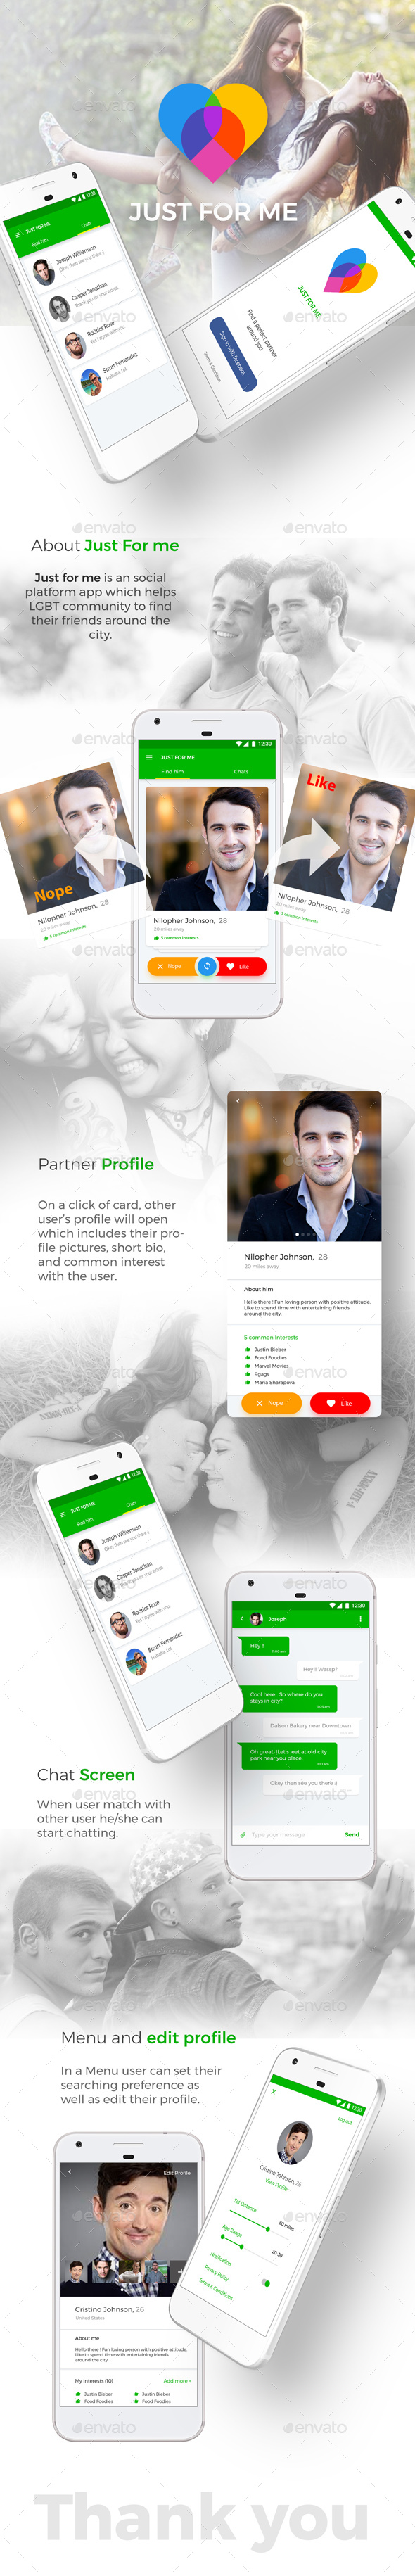 Dating App UI Kit like Tinder | Just For Me for Android + iOS - User Interfaces Web Elements